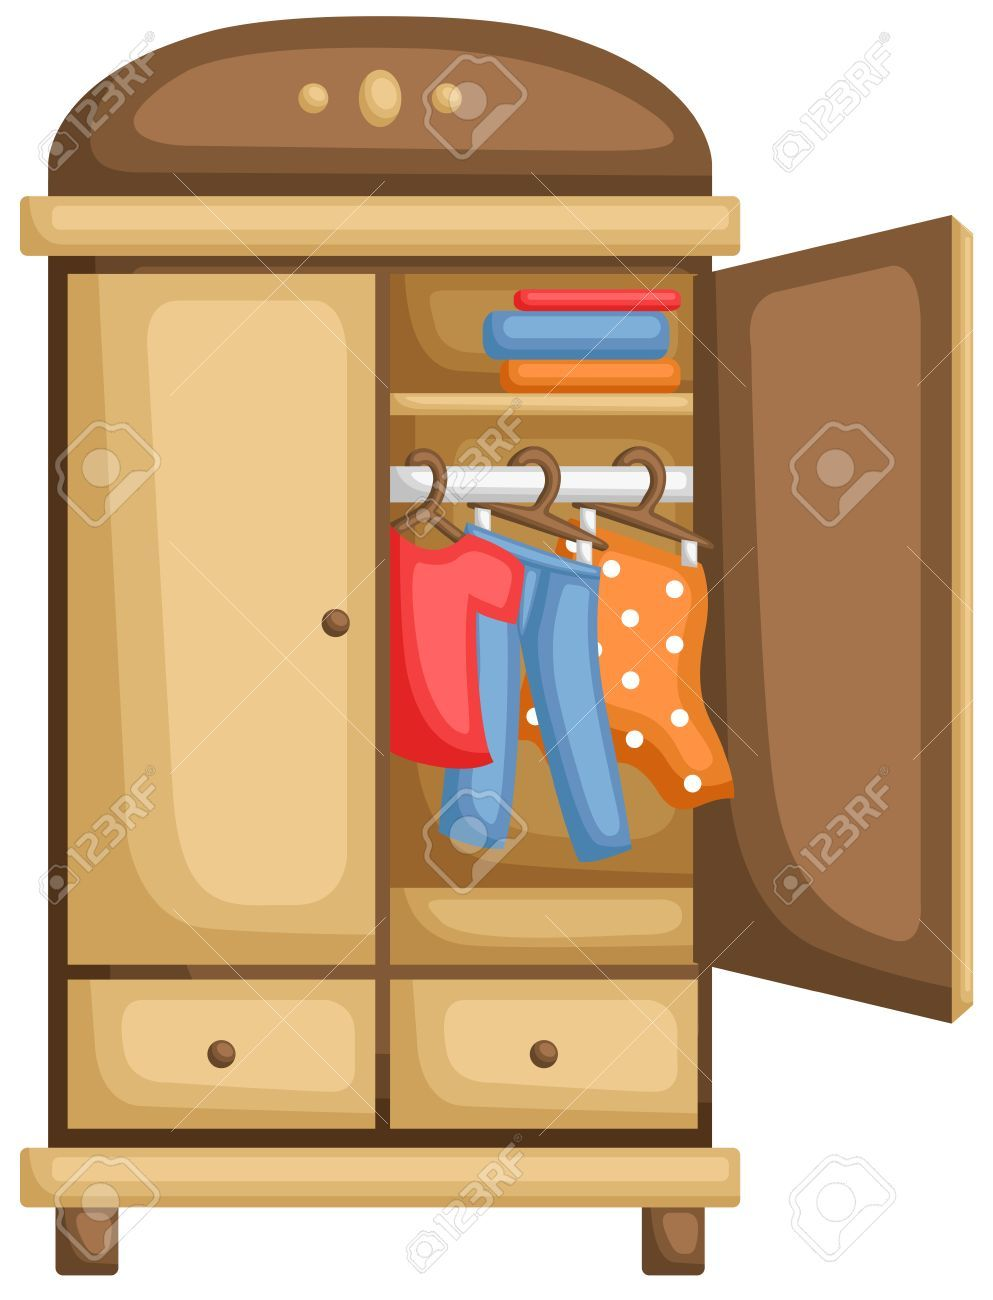 Clothes cupboard clipart 3 » Clipart Portal.